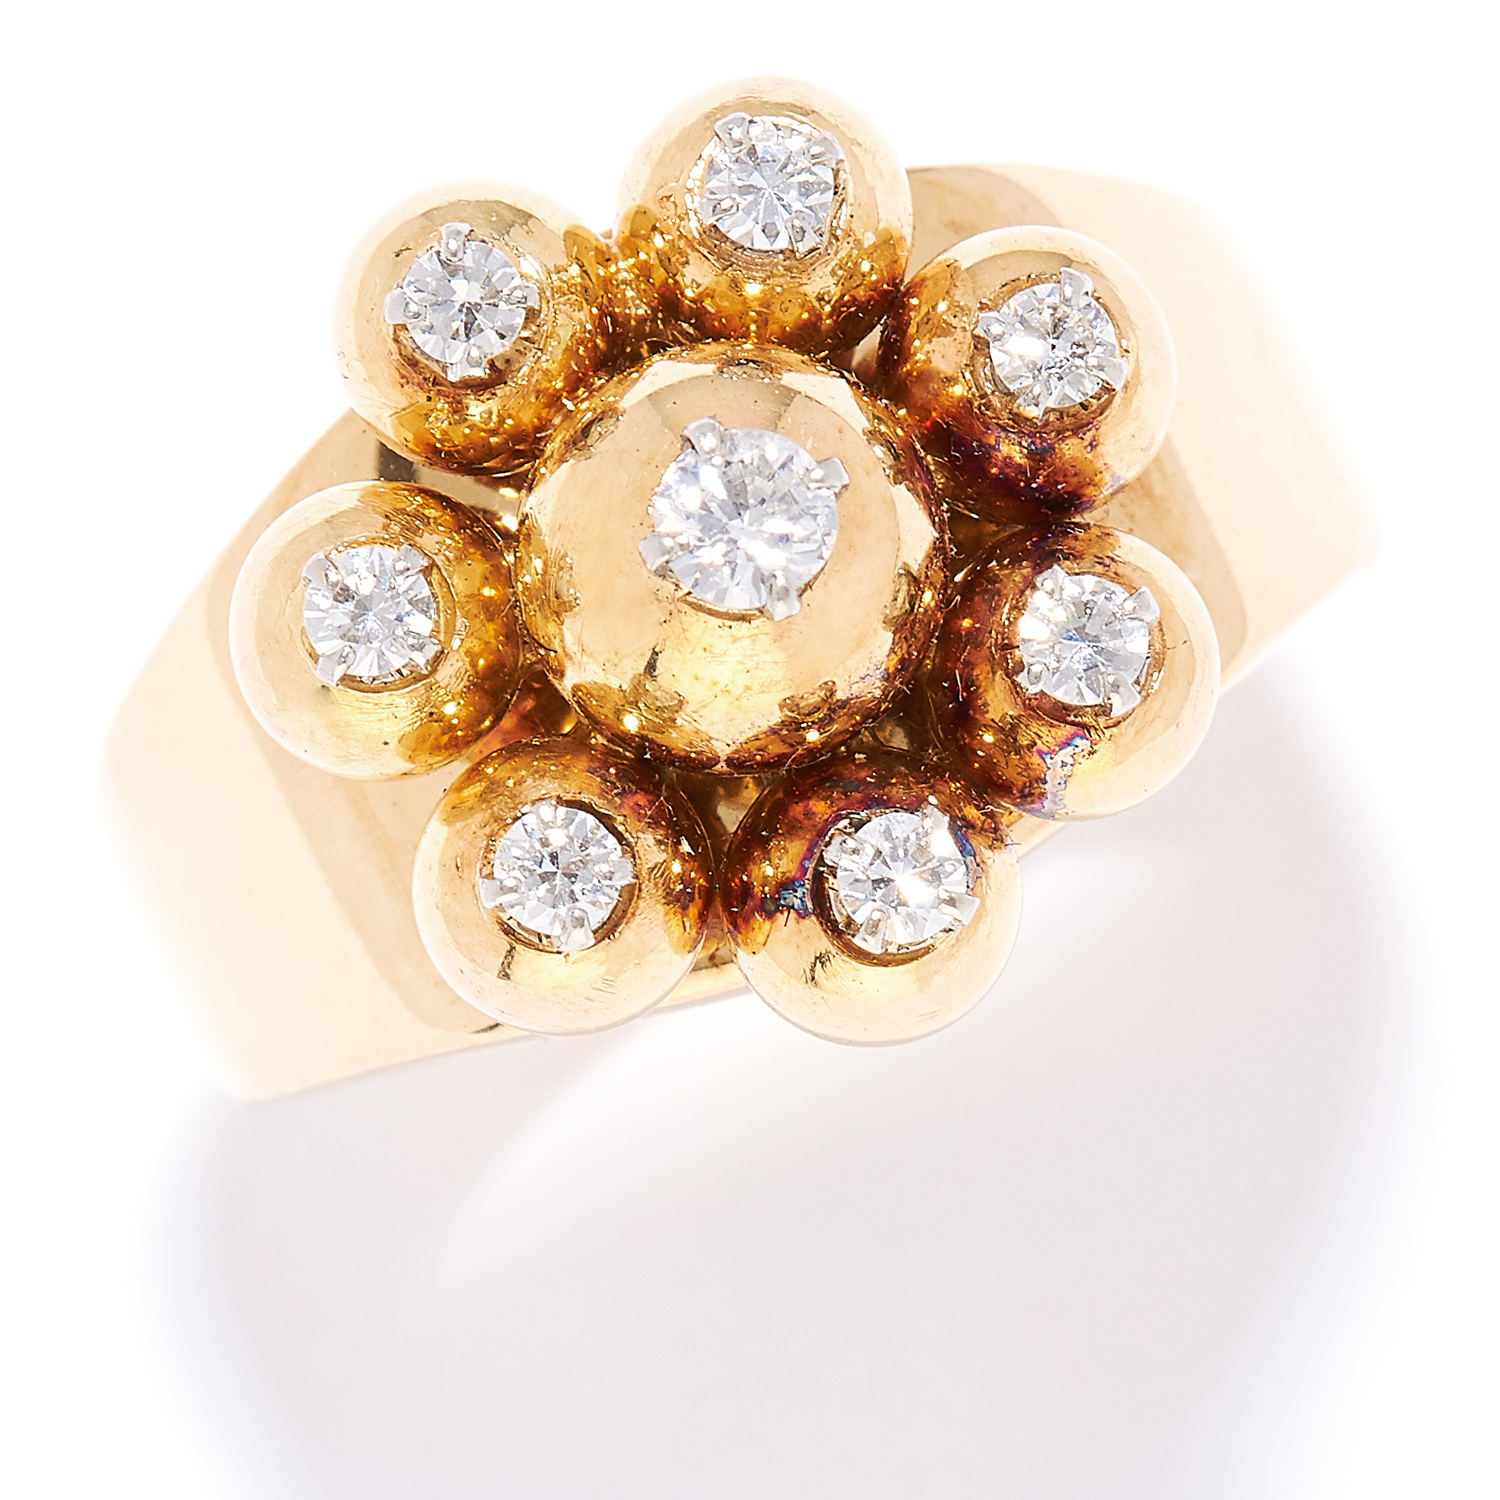 Los 59 - VINTAGE DIAMOND DRESS RING, CARTIER, CIRCA 1960 in 18ct yellow gold, set with round cut diamonds